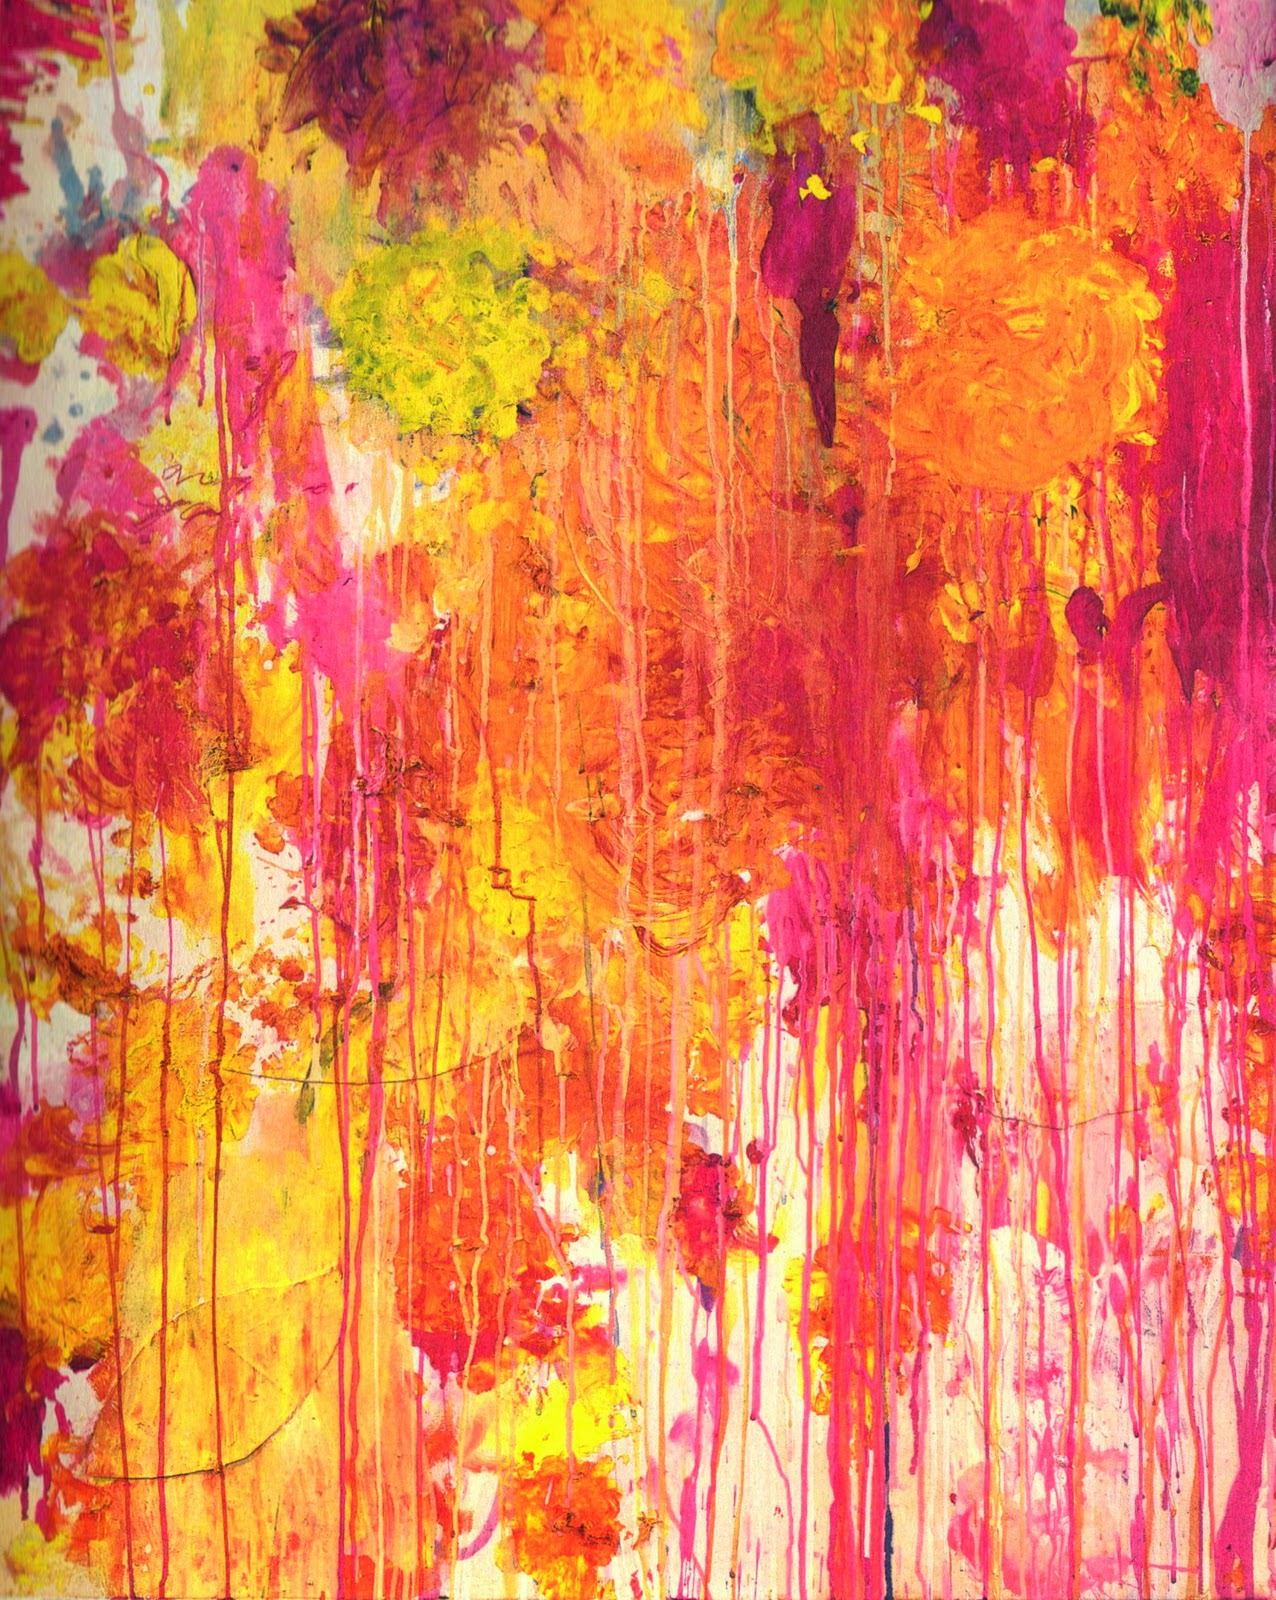 NEW TECHNOLOGY: Cy Twombly